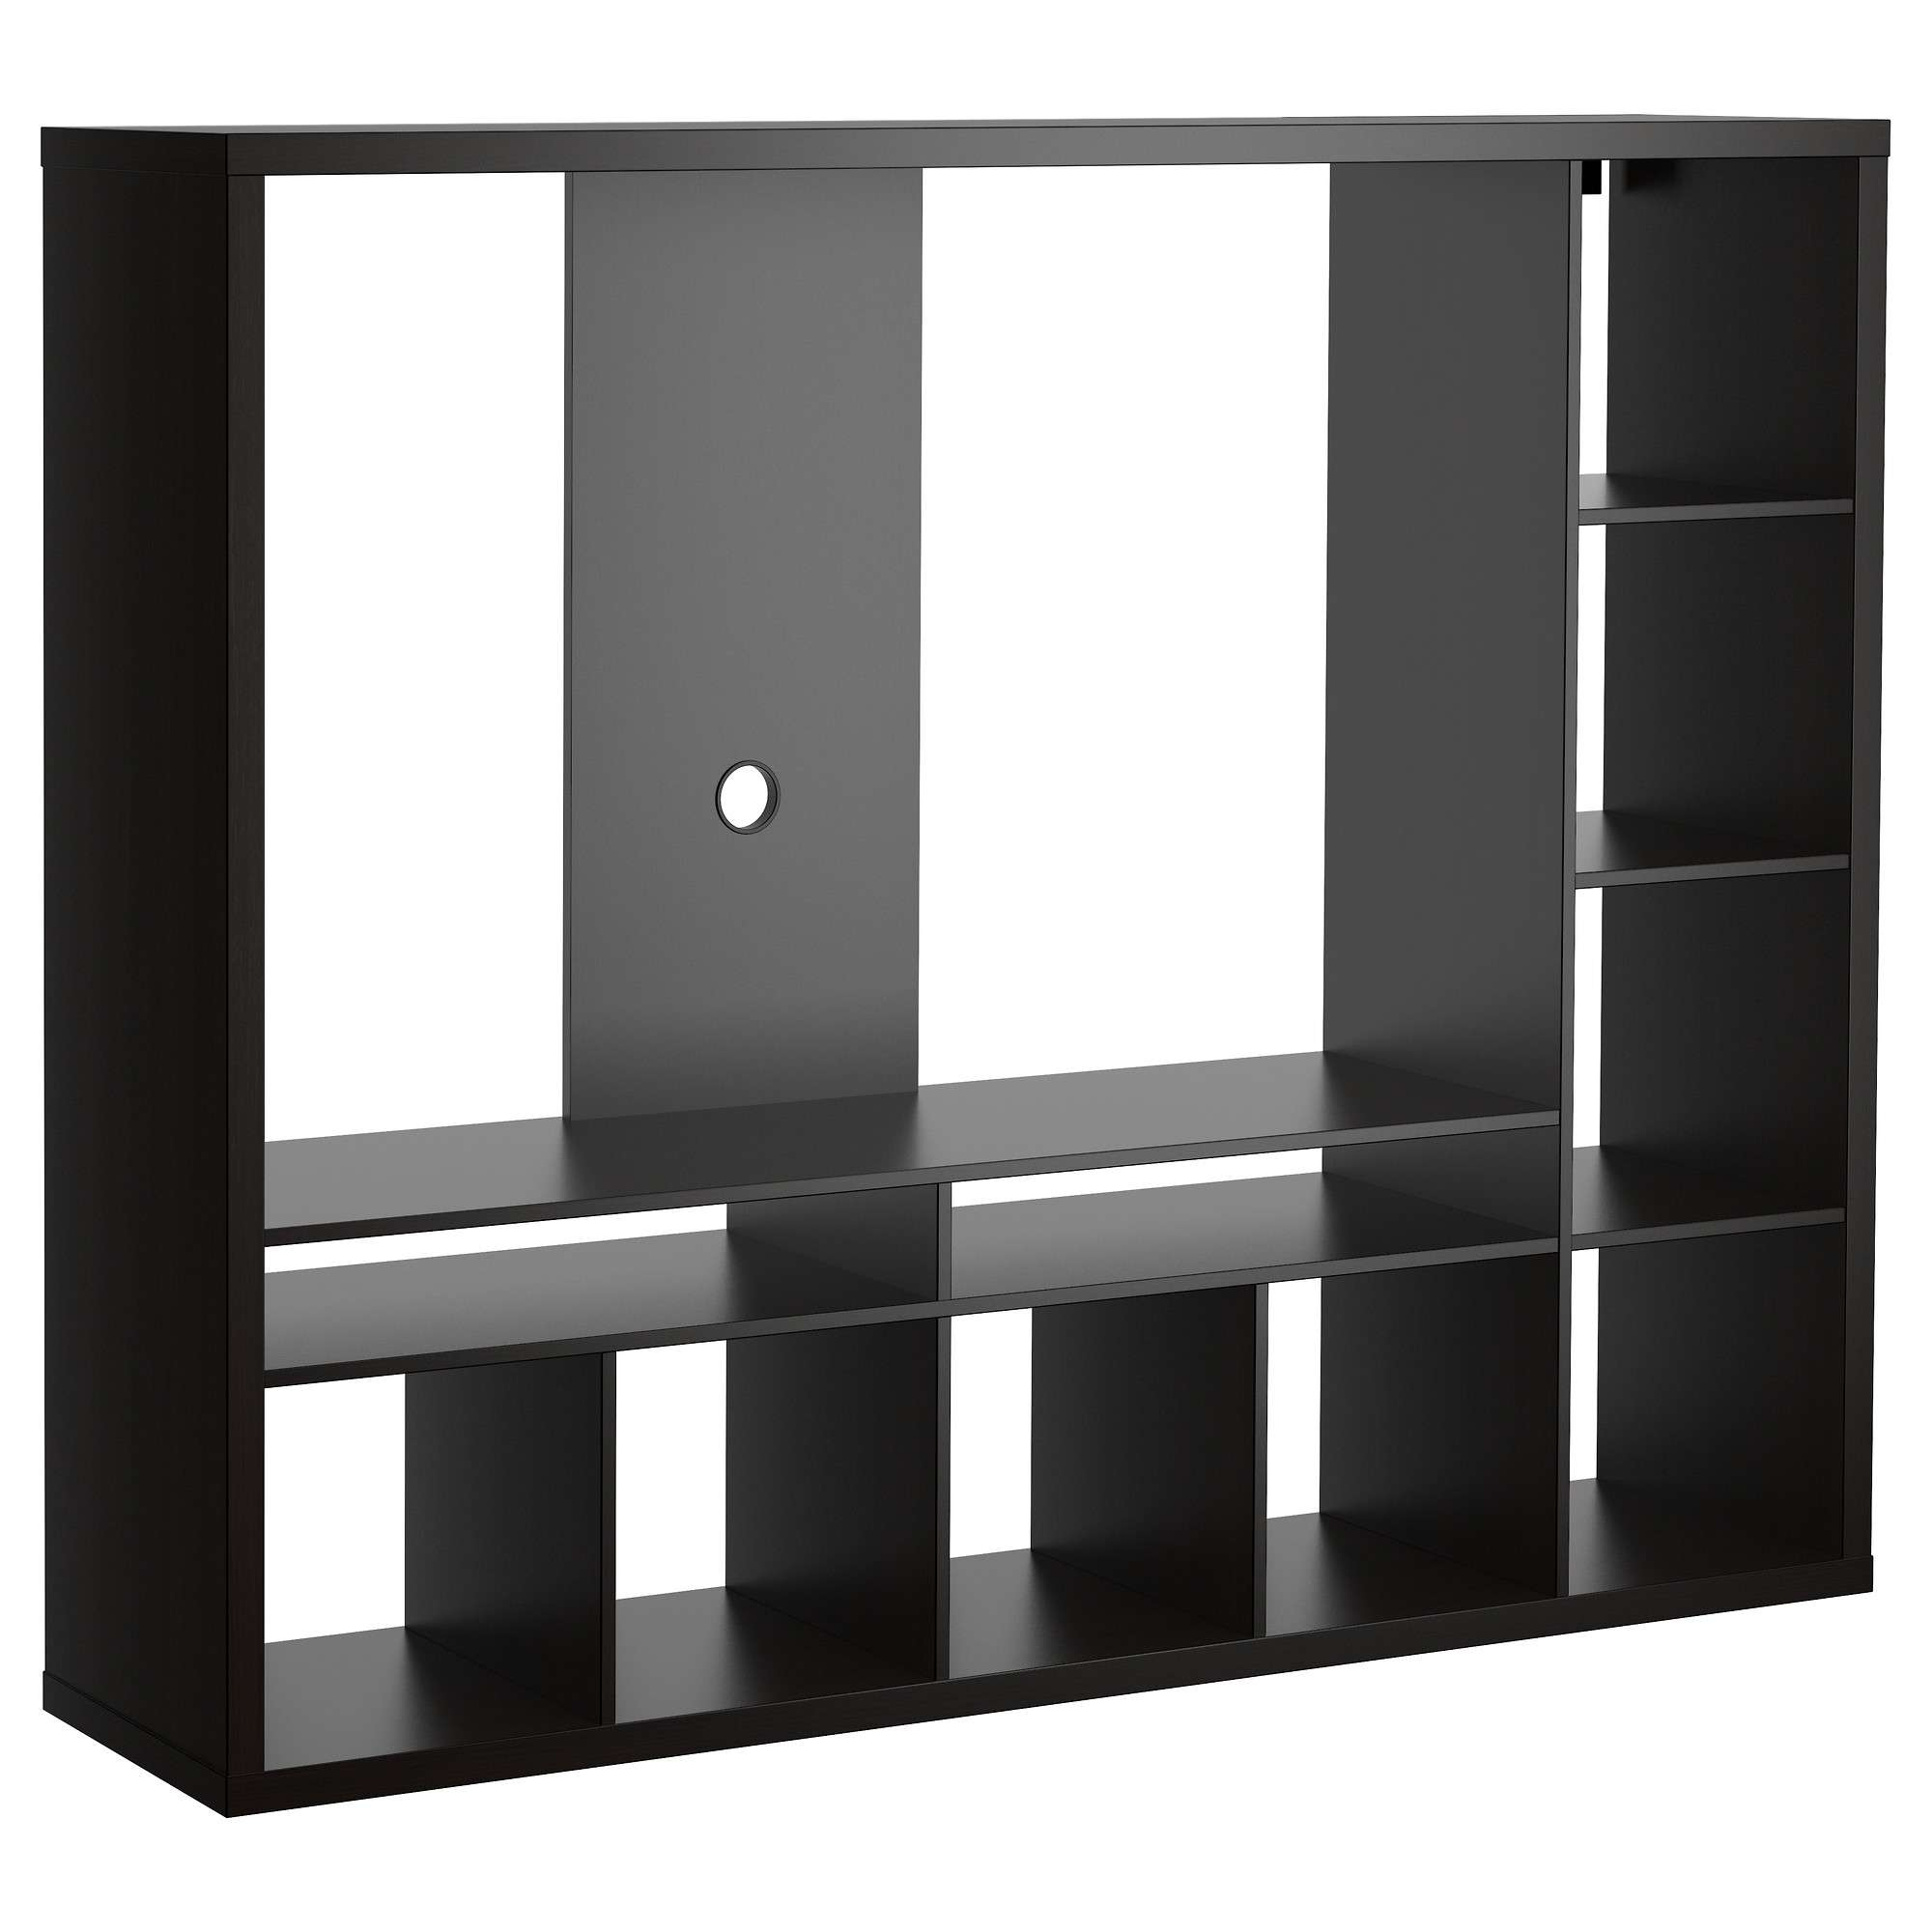 Lappland Tv Storage Unit – Black Brown – Ikea Intended For Tv Stands At Ikea (View 5 of 15)